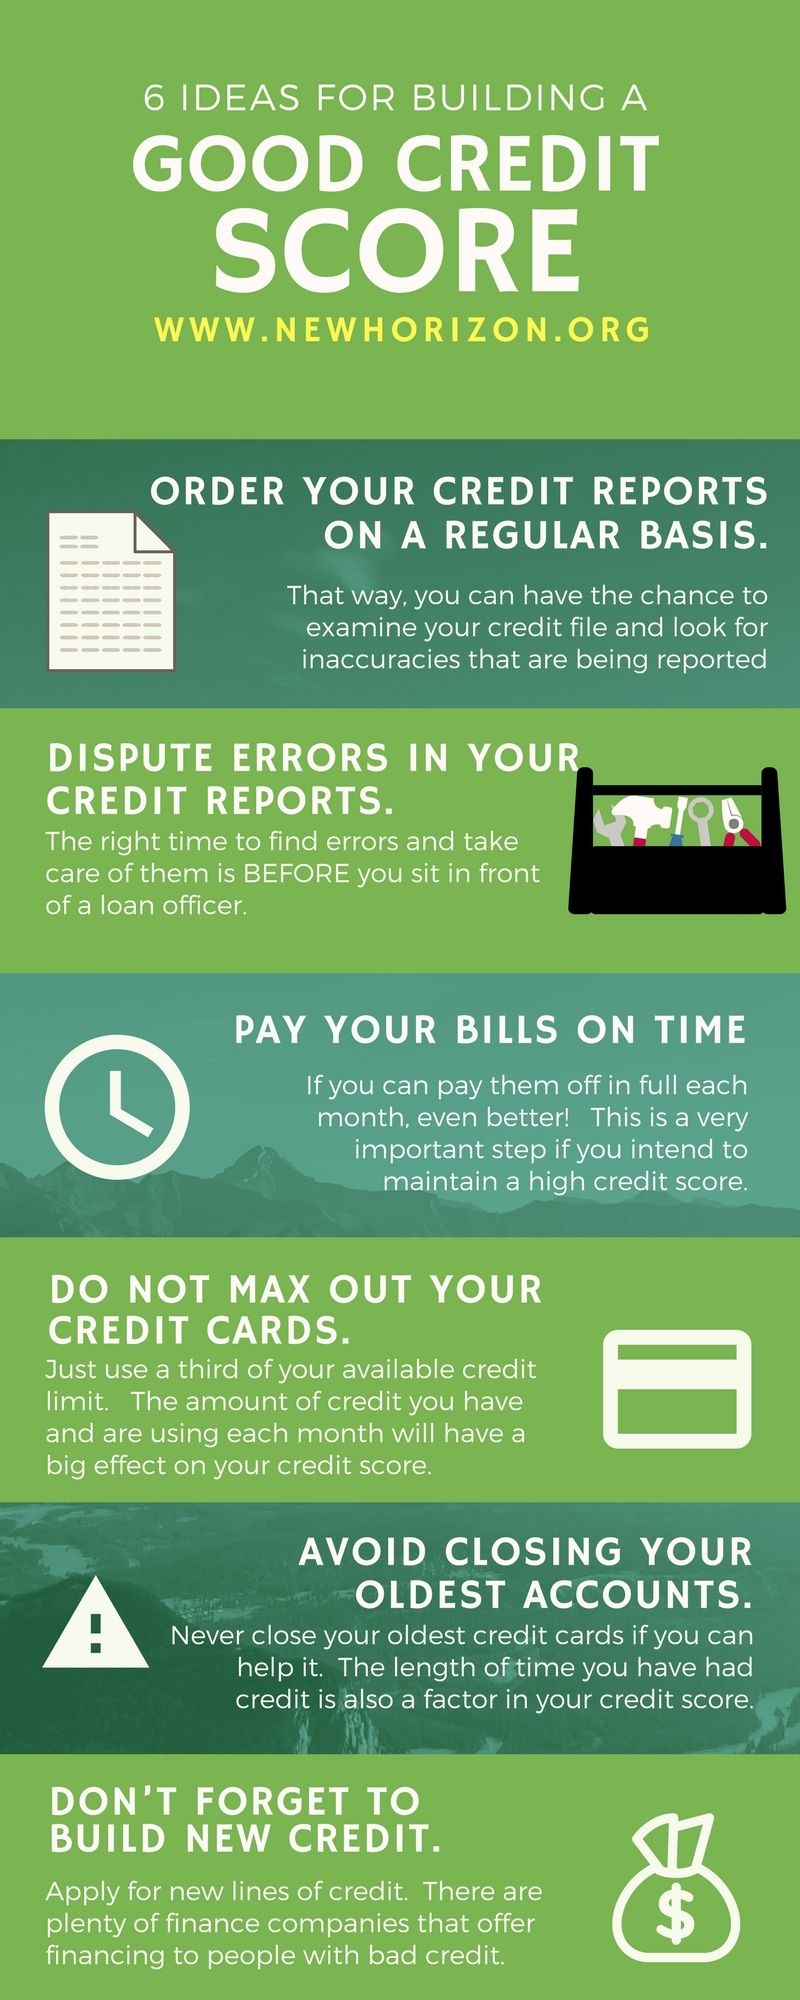 4b806fa63f20afb4e40855d1099706fd - How To Get Approved For Care Credit With No Credit